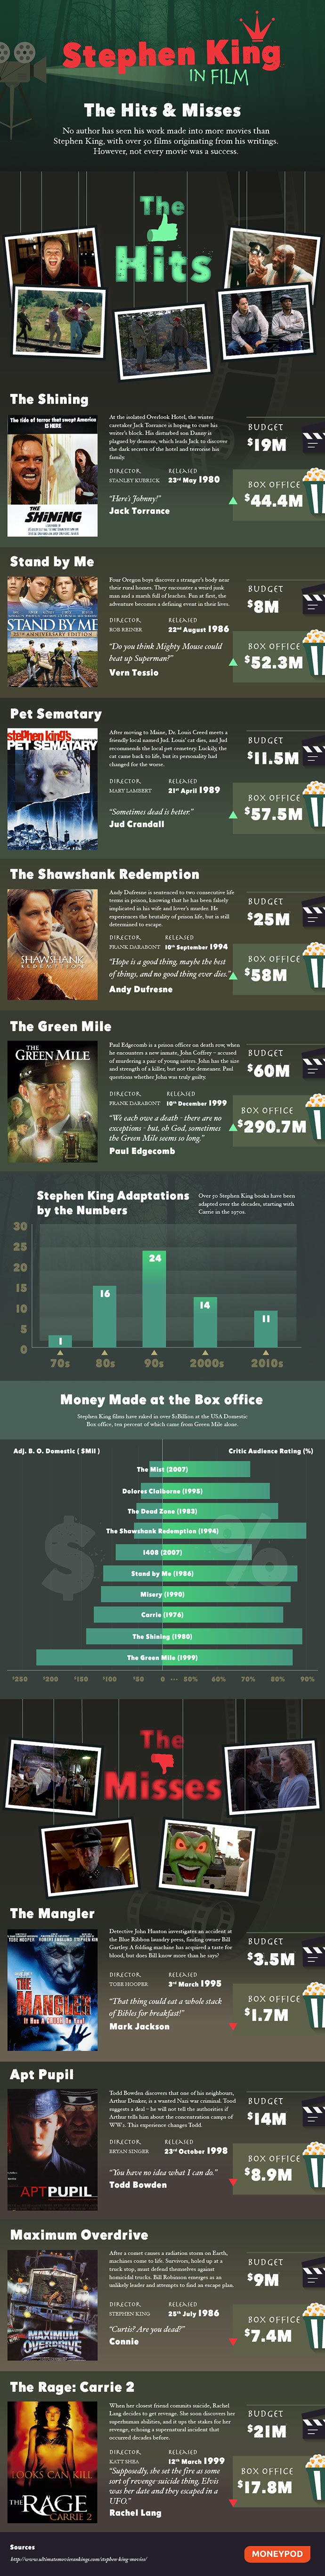 StephenKing-infographic-the-hits-and-misses